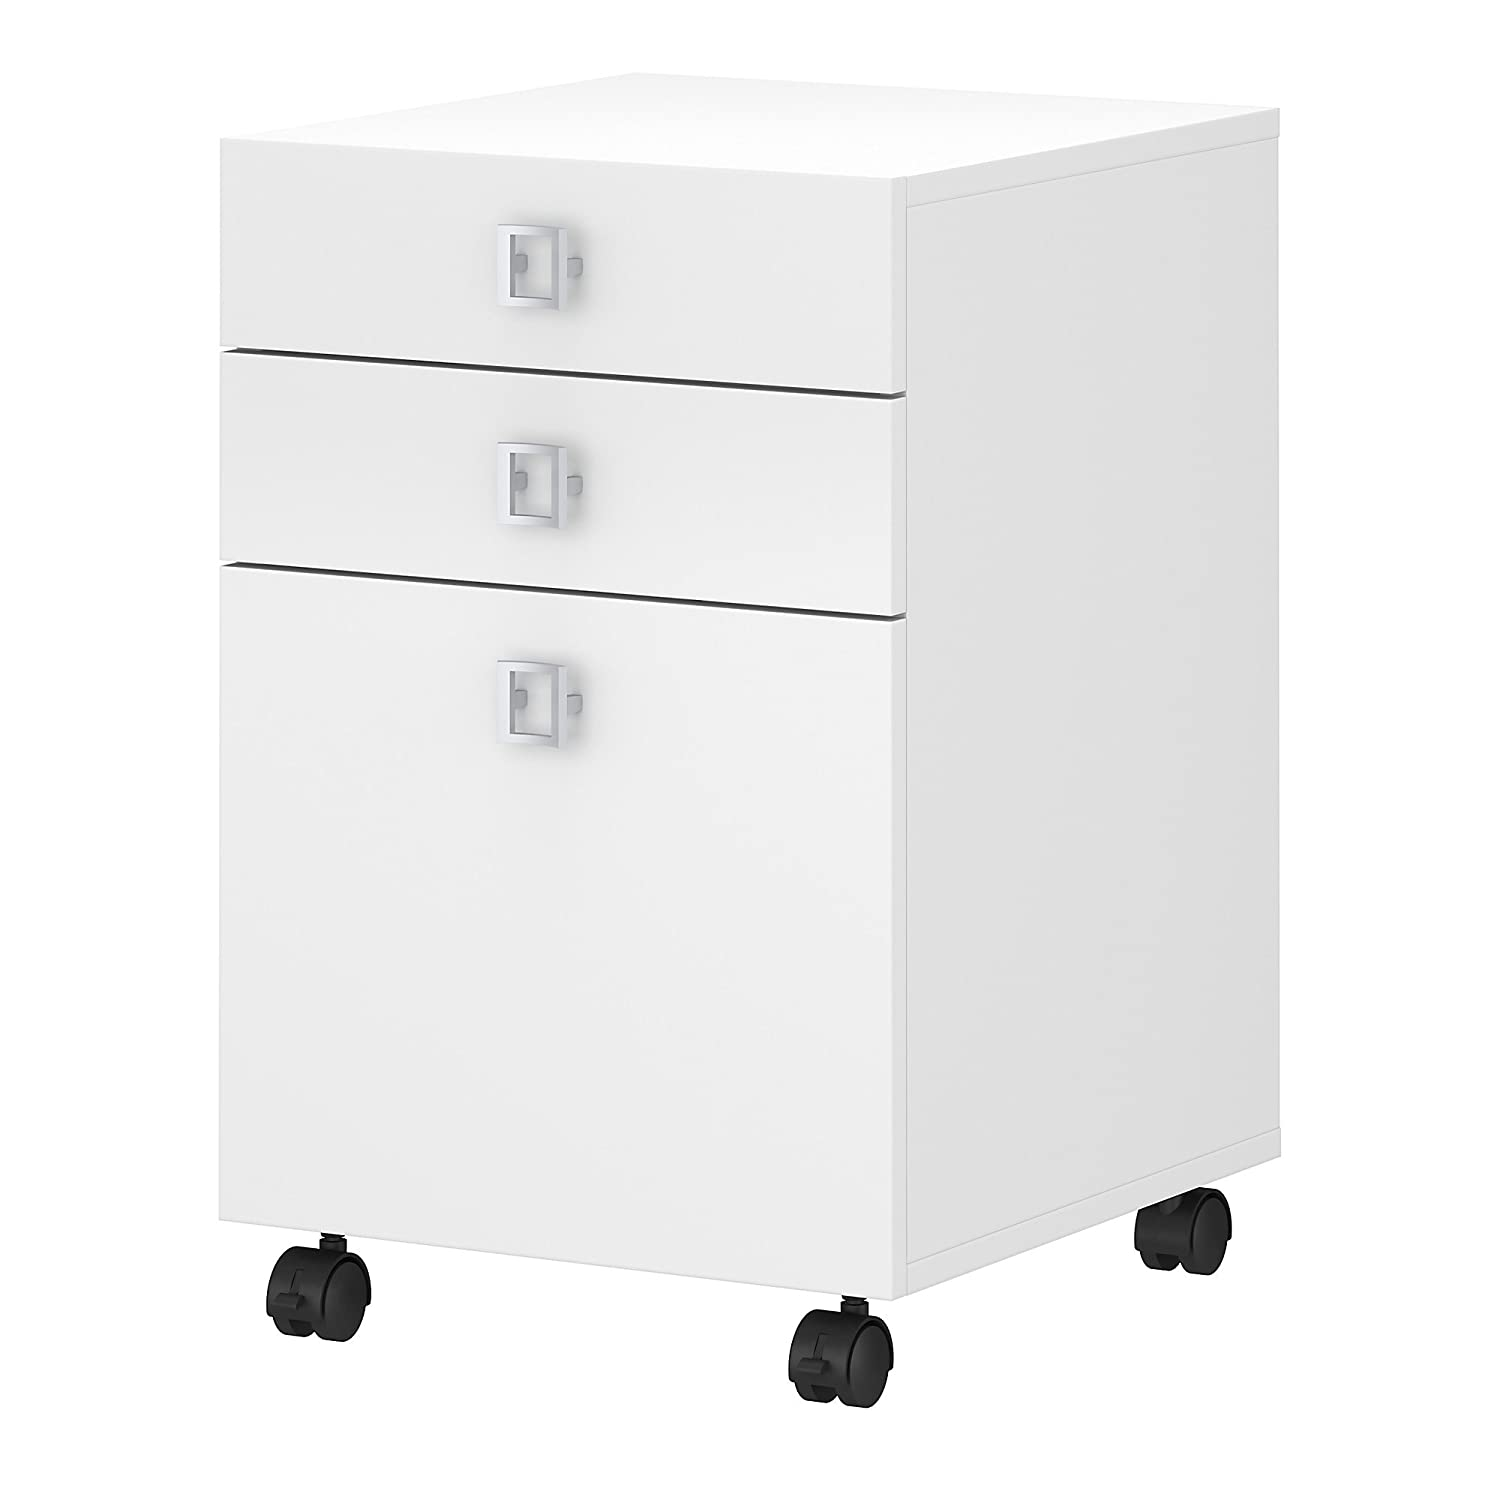 Office by kathy ireland Echo 3 Drawer Mobile File Cabinet in Pure White Bush Industries KI60101-03